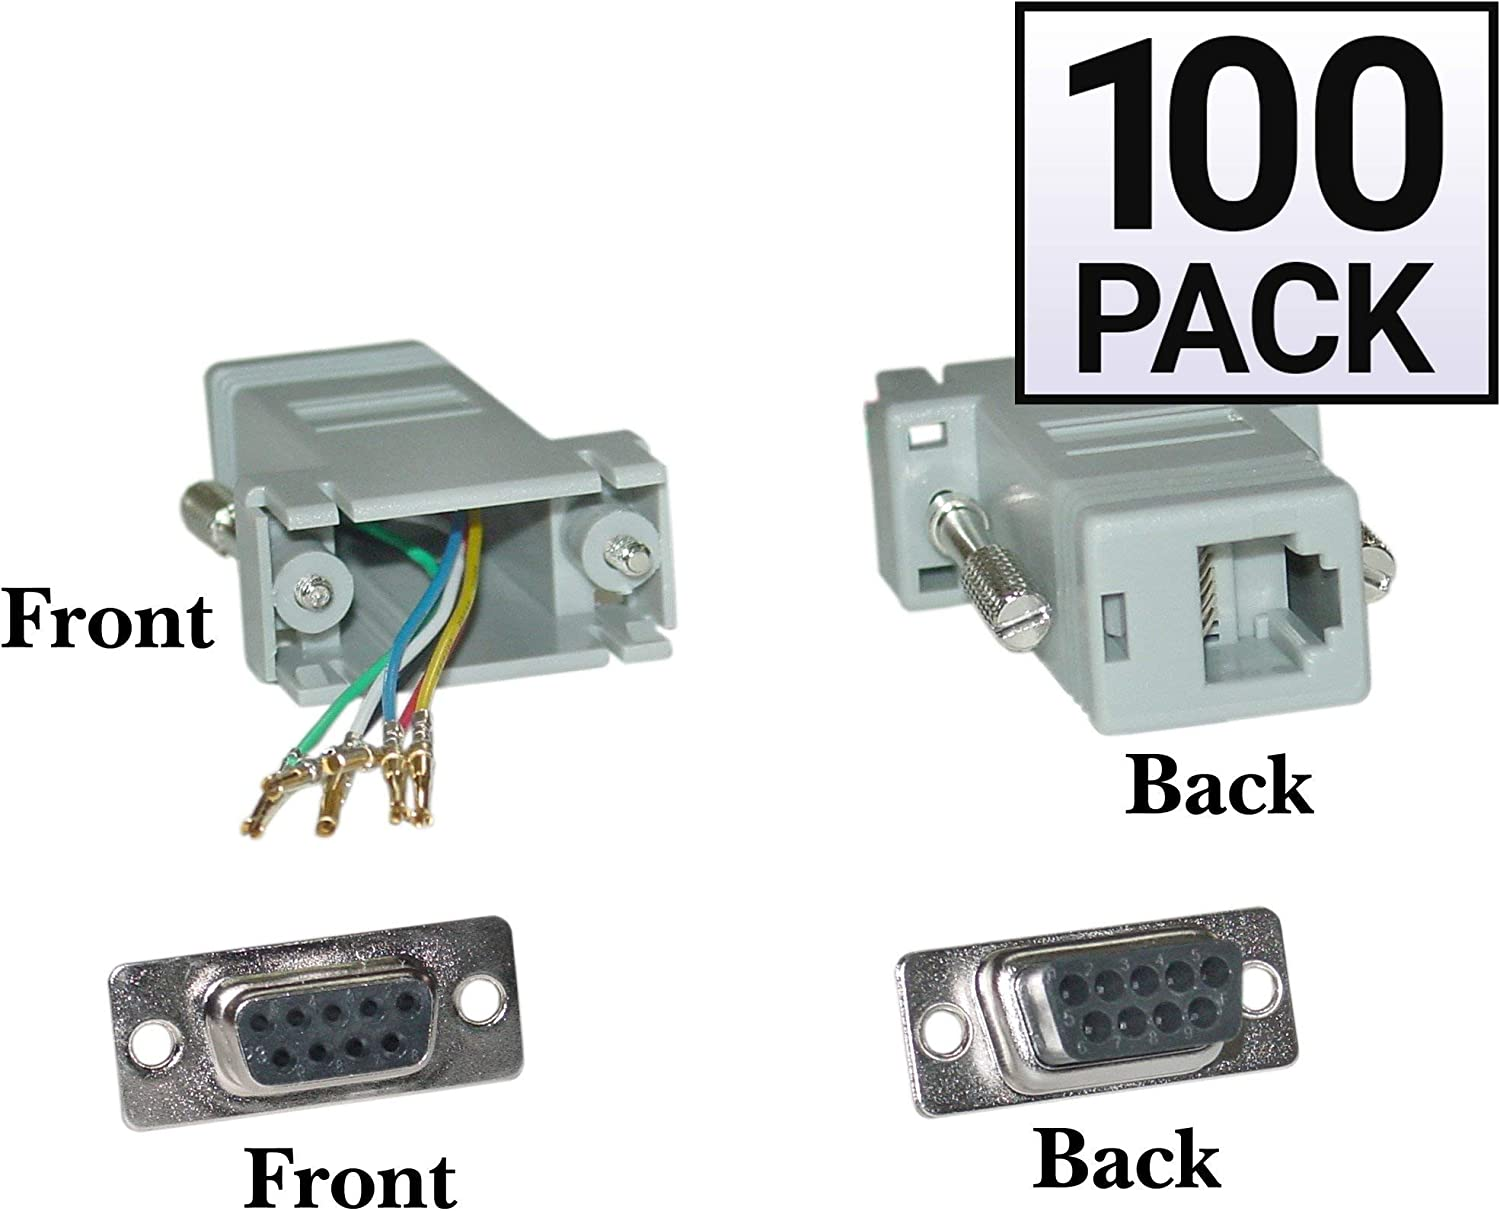 Gray 100 Pack Modular Adapter GOWOS DB9 Female to RJ12 Jack